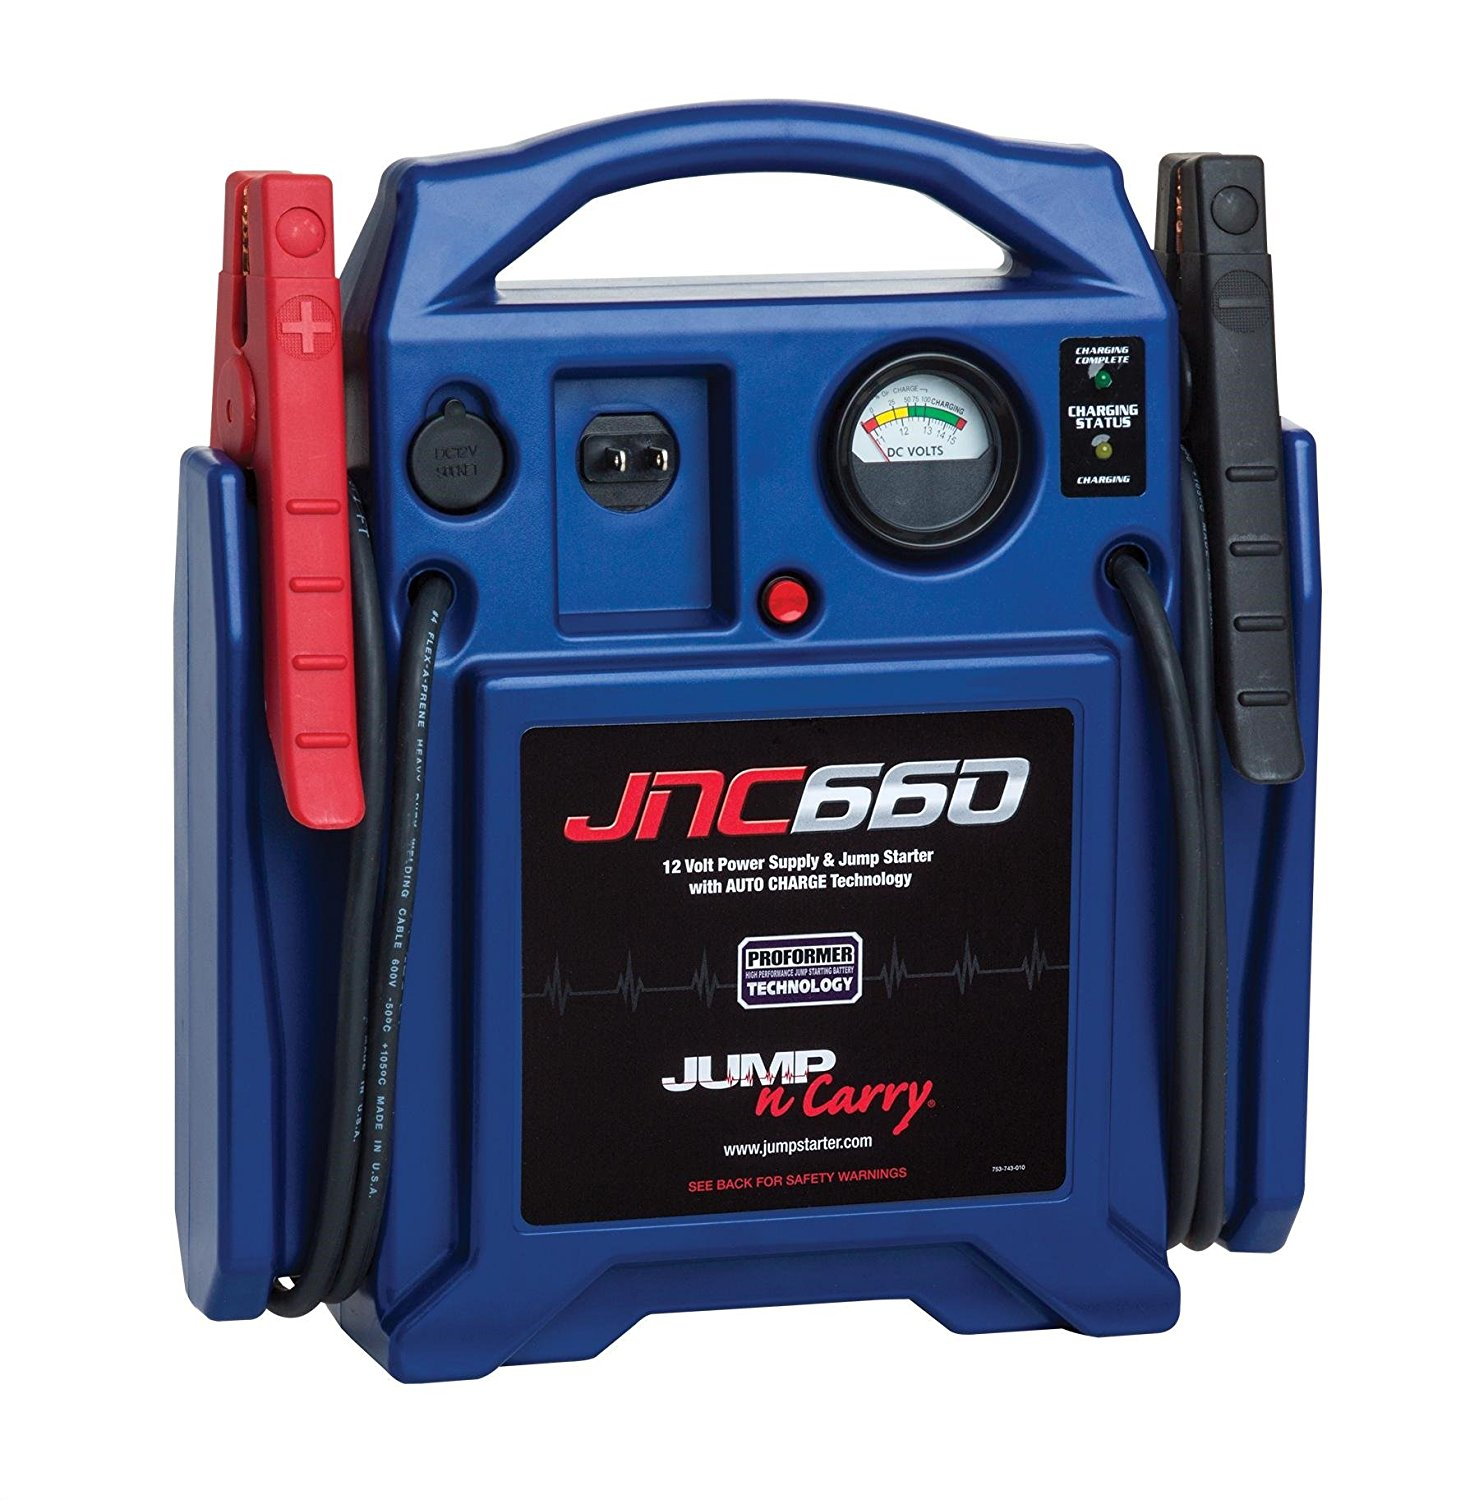 JNC660 Battery Jump Pack-Review 12v system 1700 Peak Amps 225